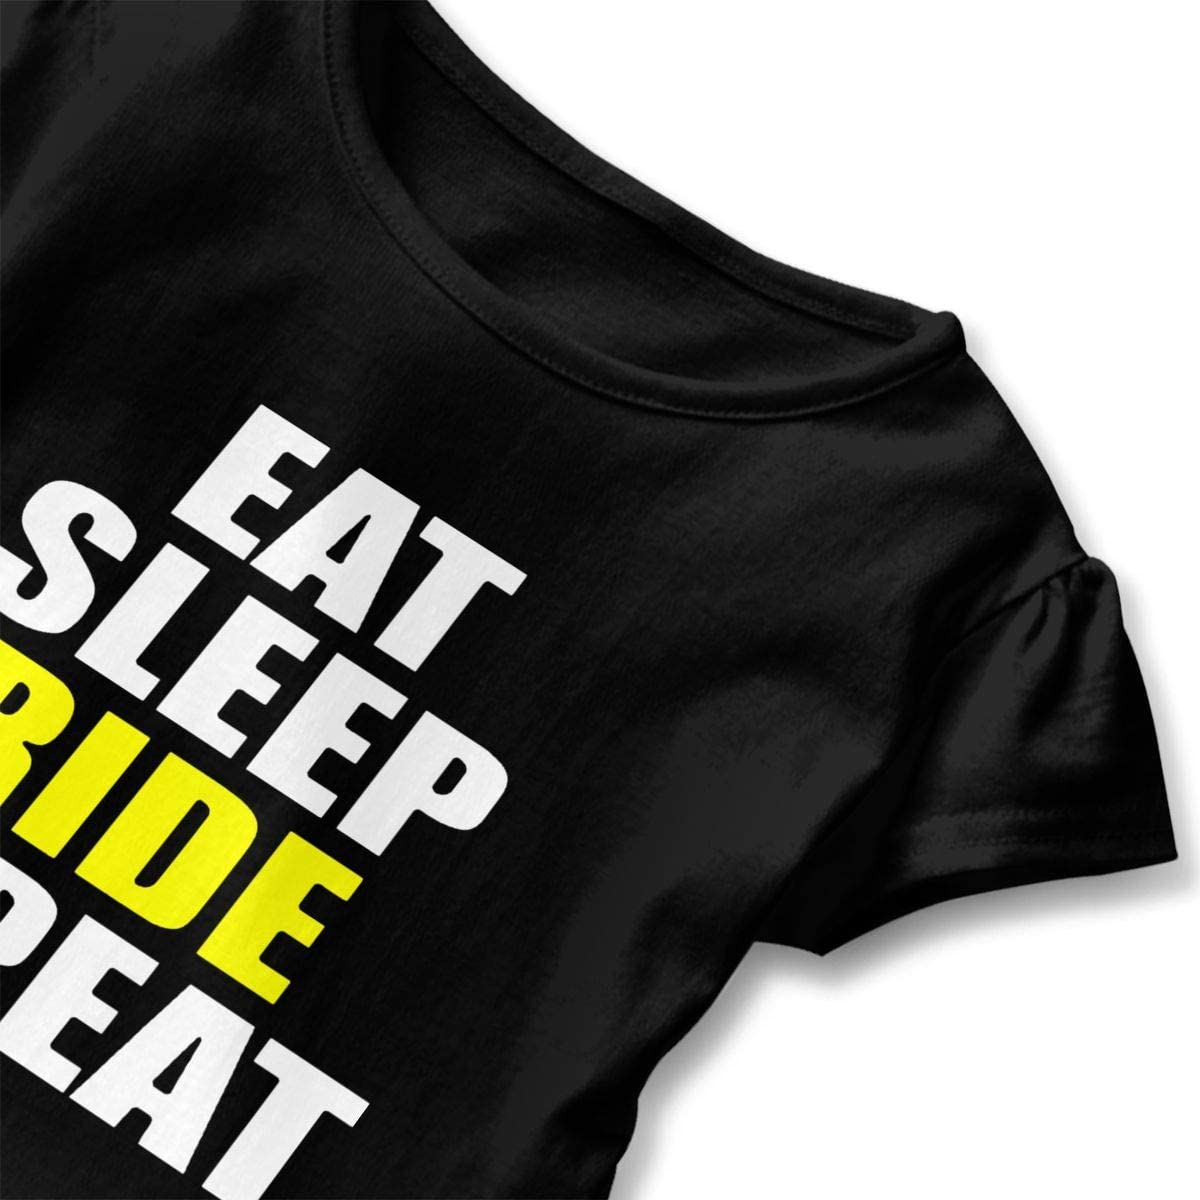 Eat Sleep Ride Repeat Shirt Baby Girls Ruffles Casual Summer Clothes for 2-6 Years Old Baby